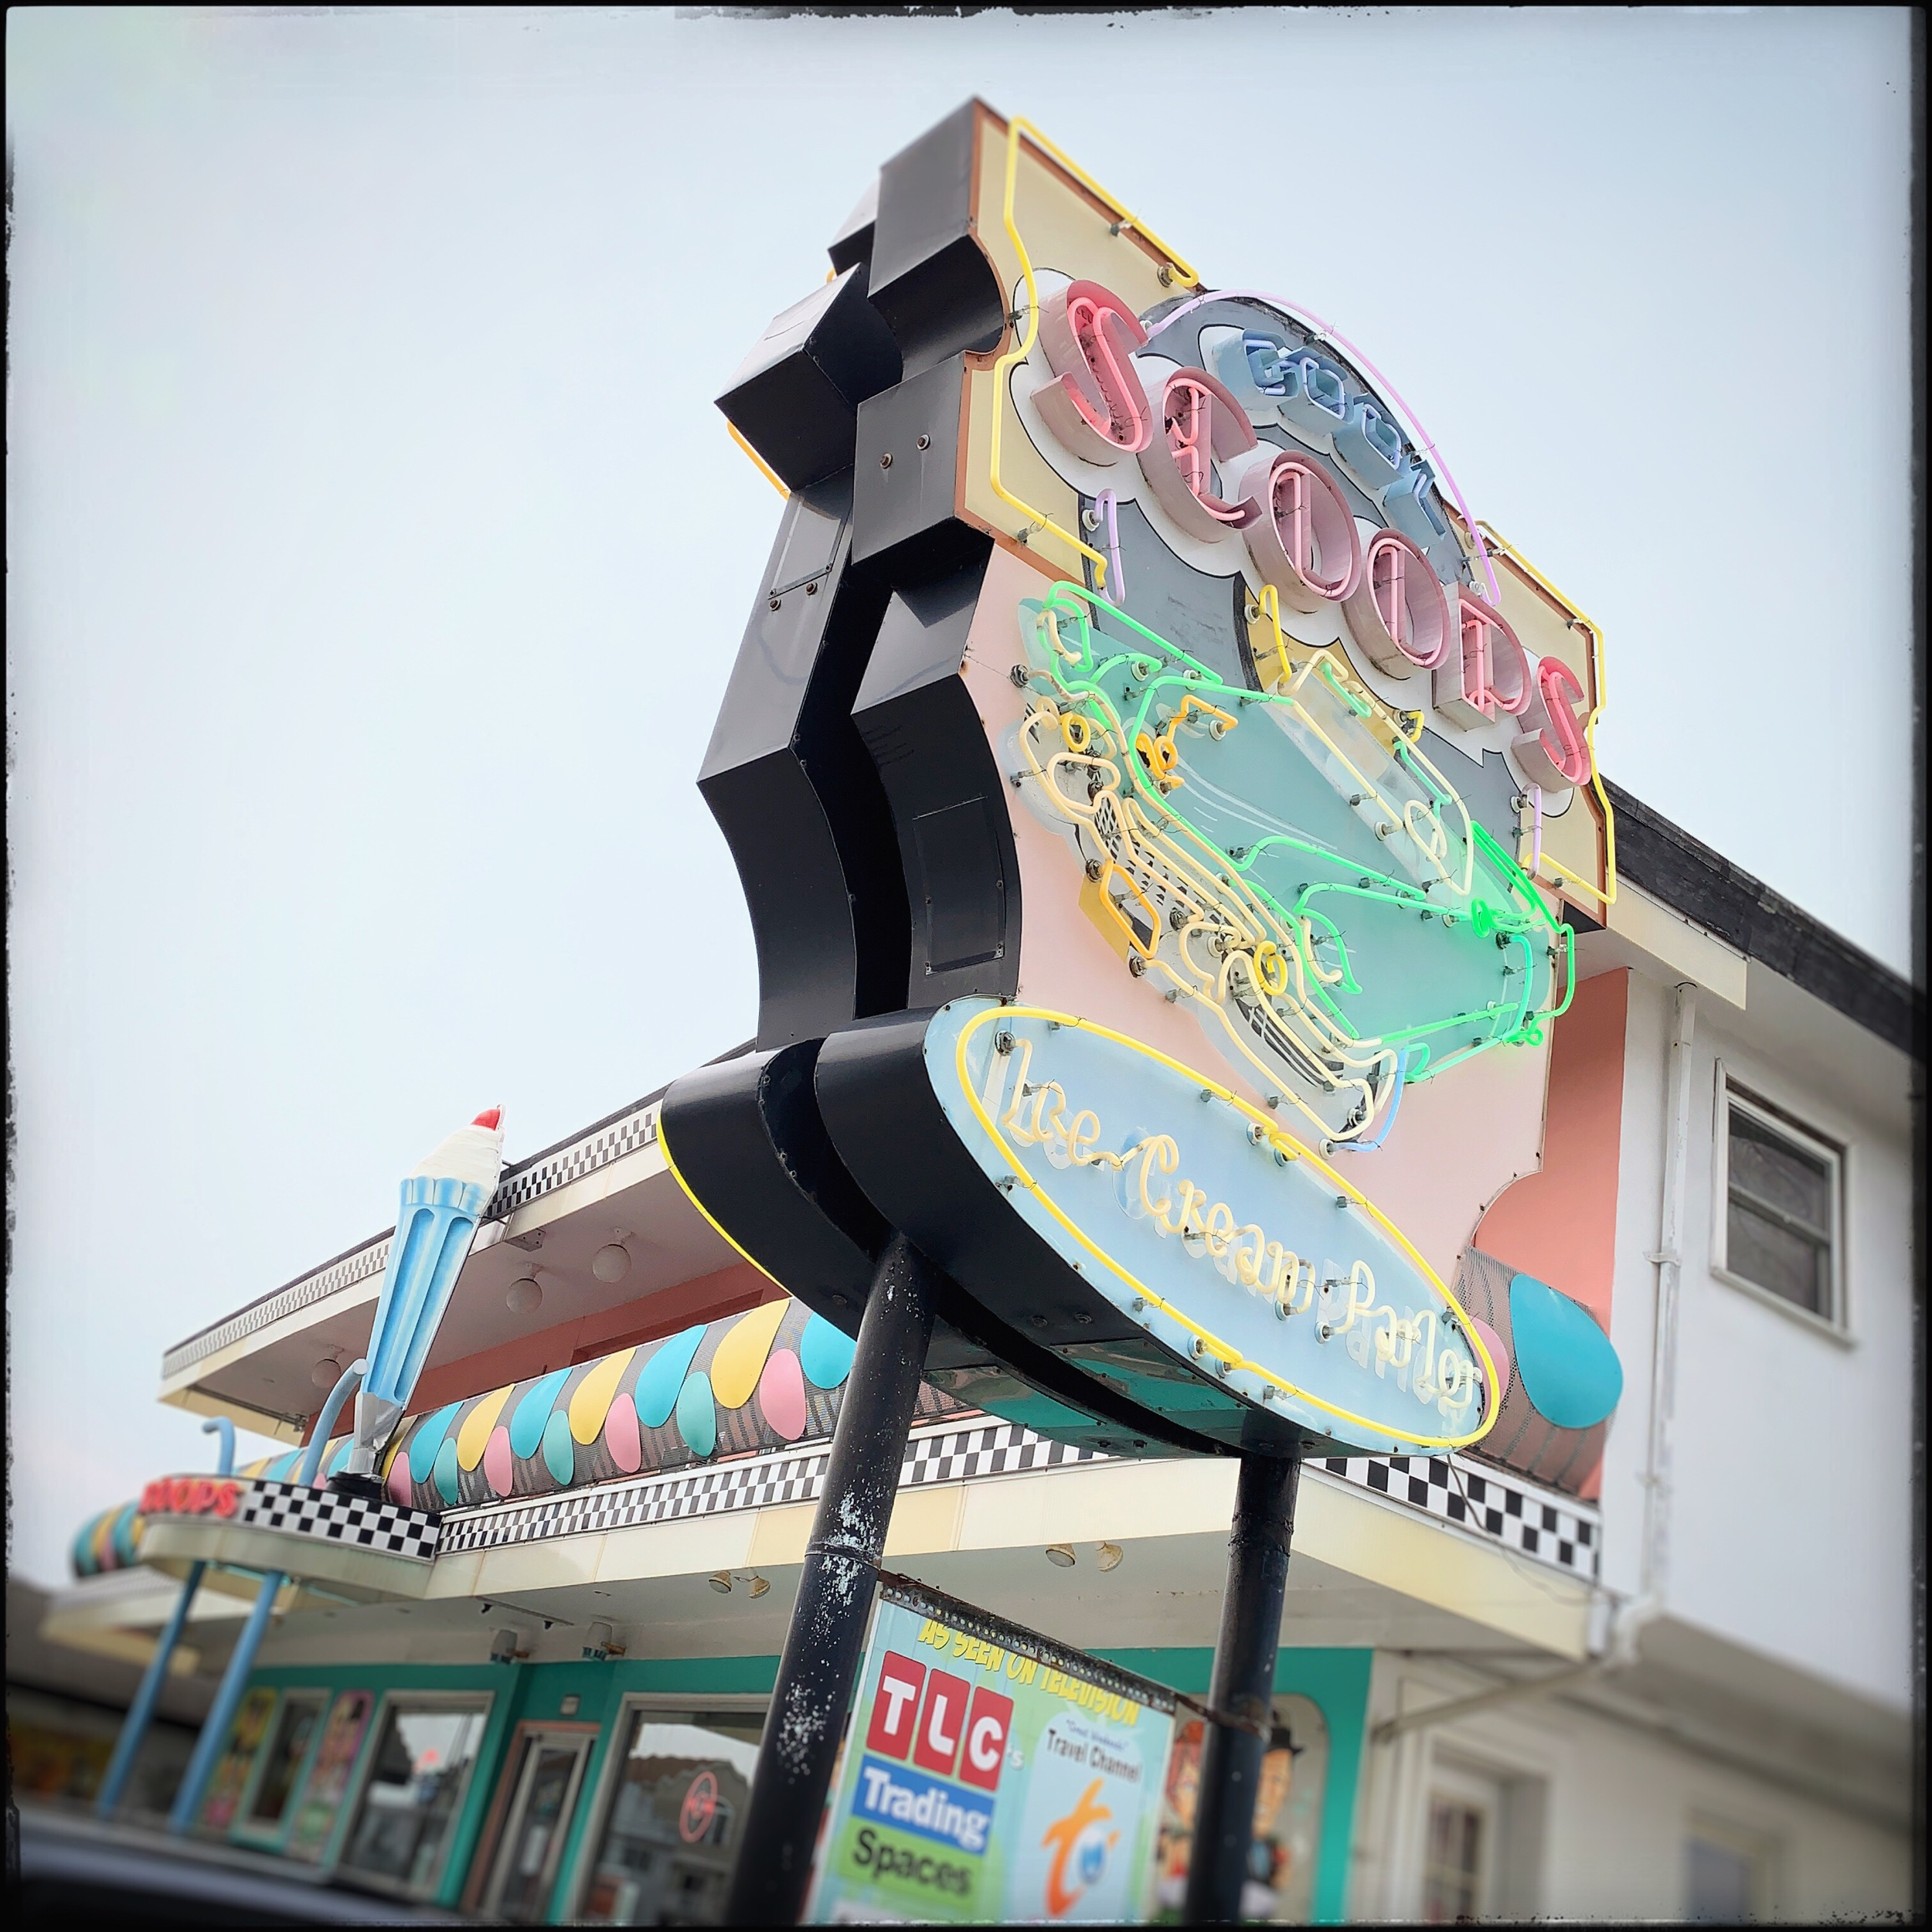 Cool Scoops   ~ Wildwood, NY (embiggenable) • iPhone